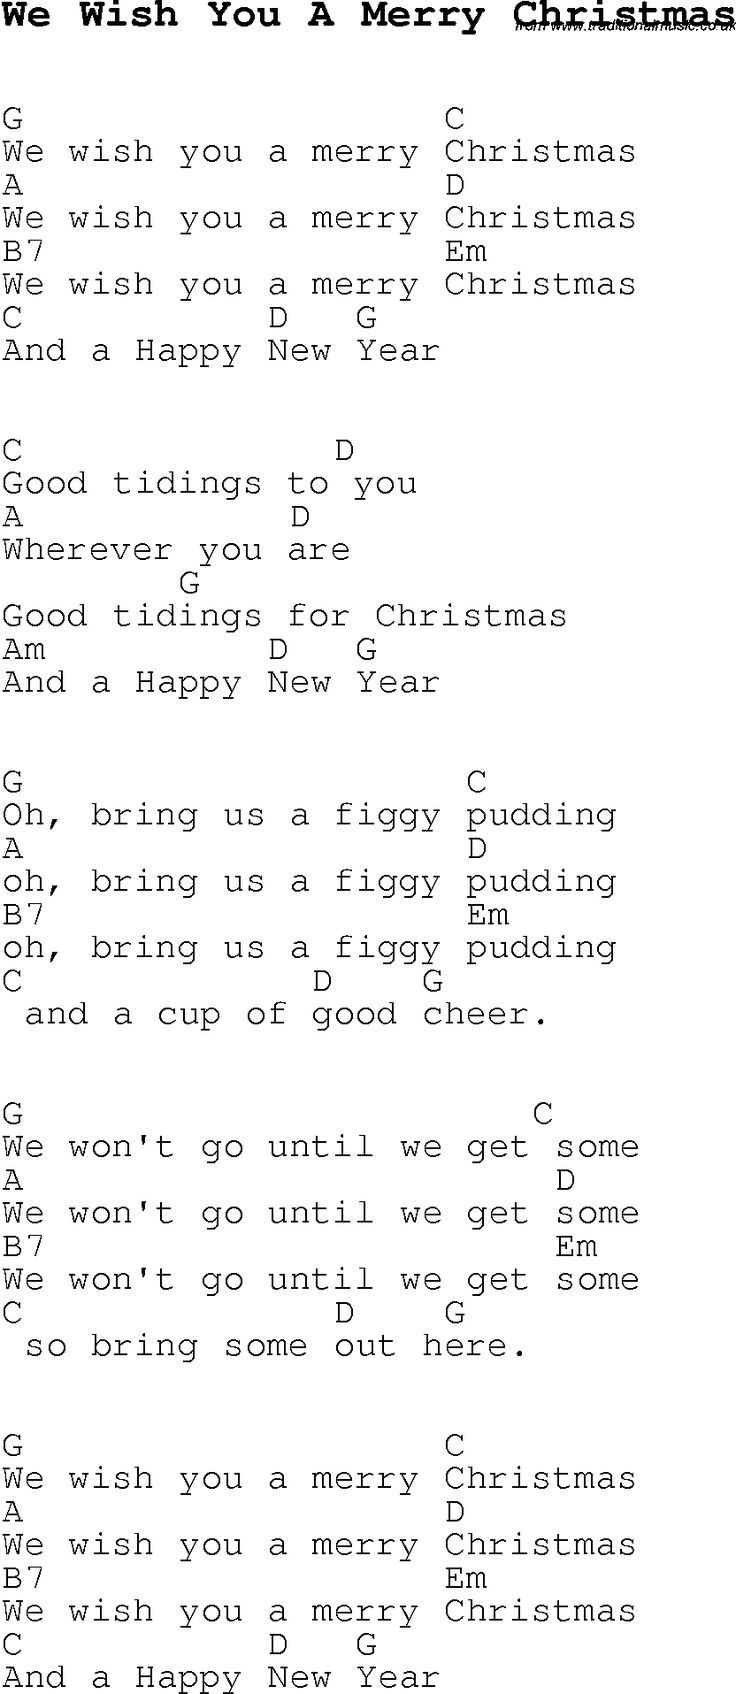 27 best christmas carols images on pinterest christmas carol christmas songs and carols lyrics with chords for guitar banjo for we wish you hexwebz Gallery